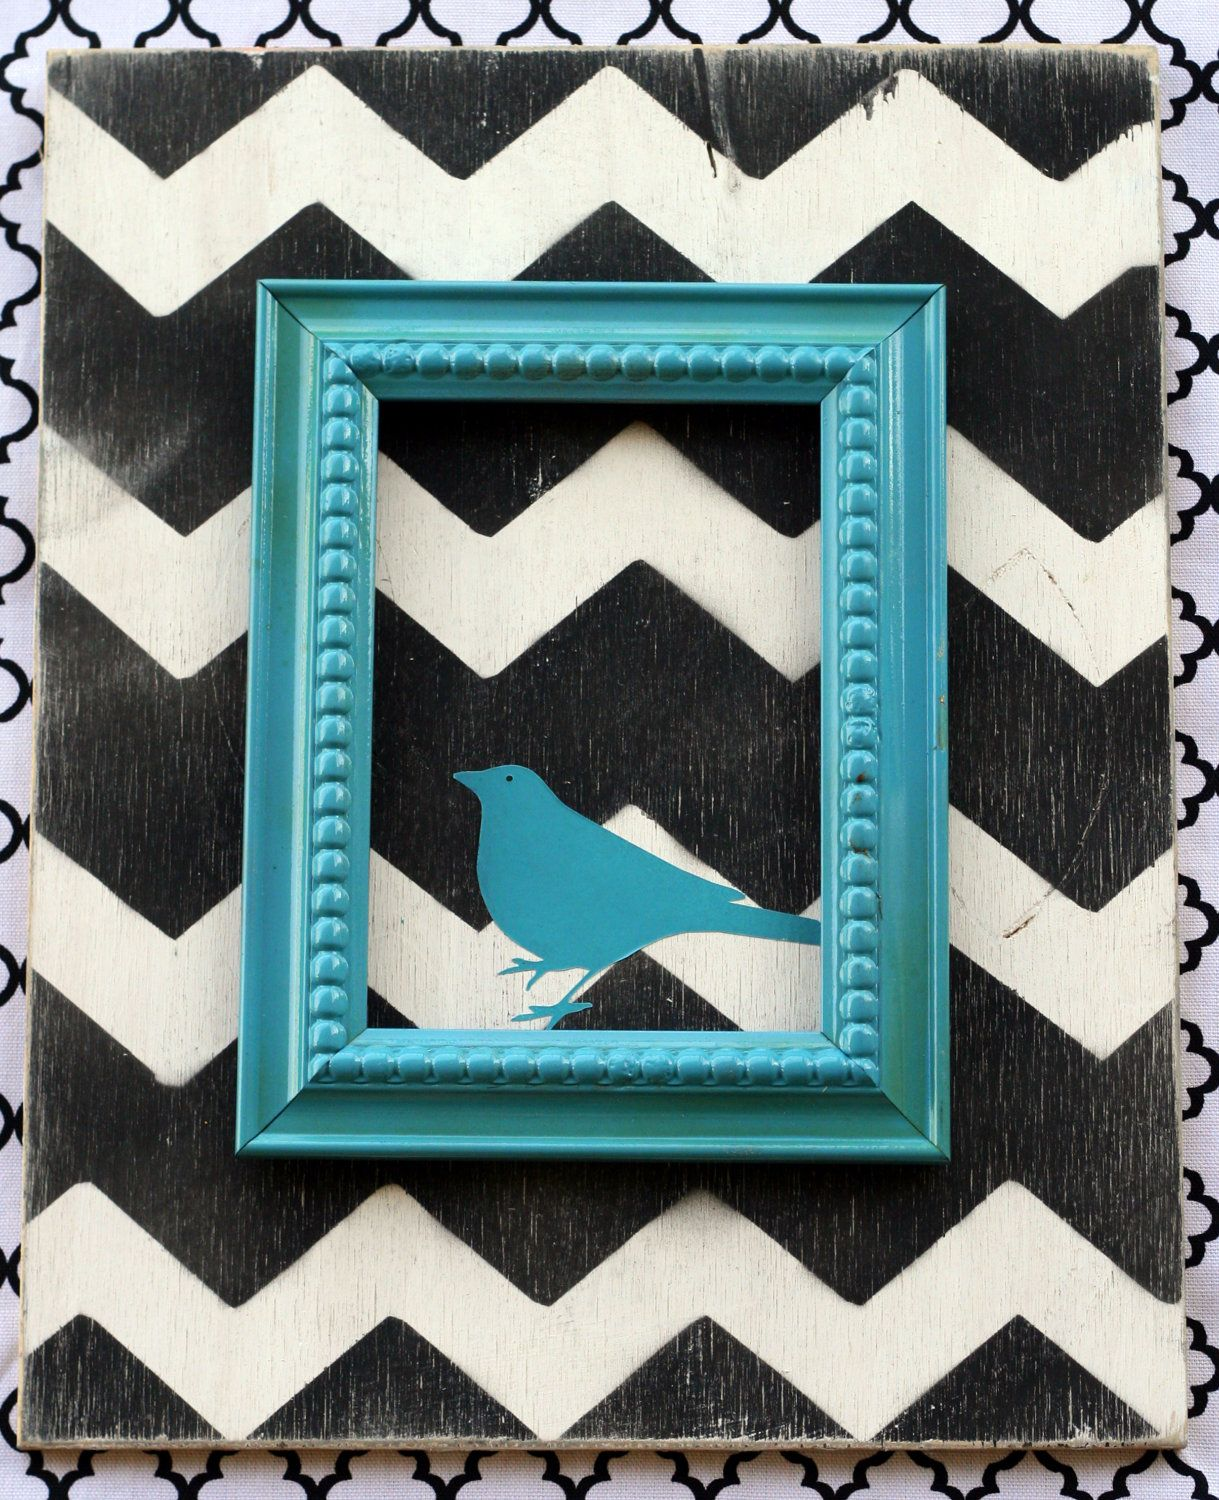 Beautiful Chudidar Dresses Http Couponcodes6 Com Endex Php Id A23b732 Chevron Wall Decor Diy Picture Frames Picture Frame Crafts